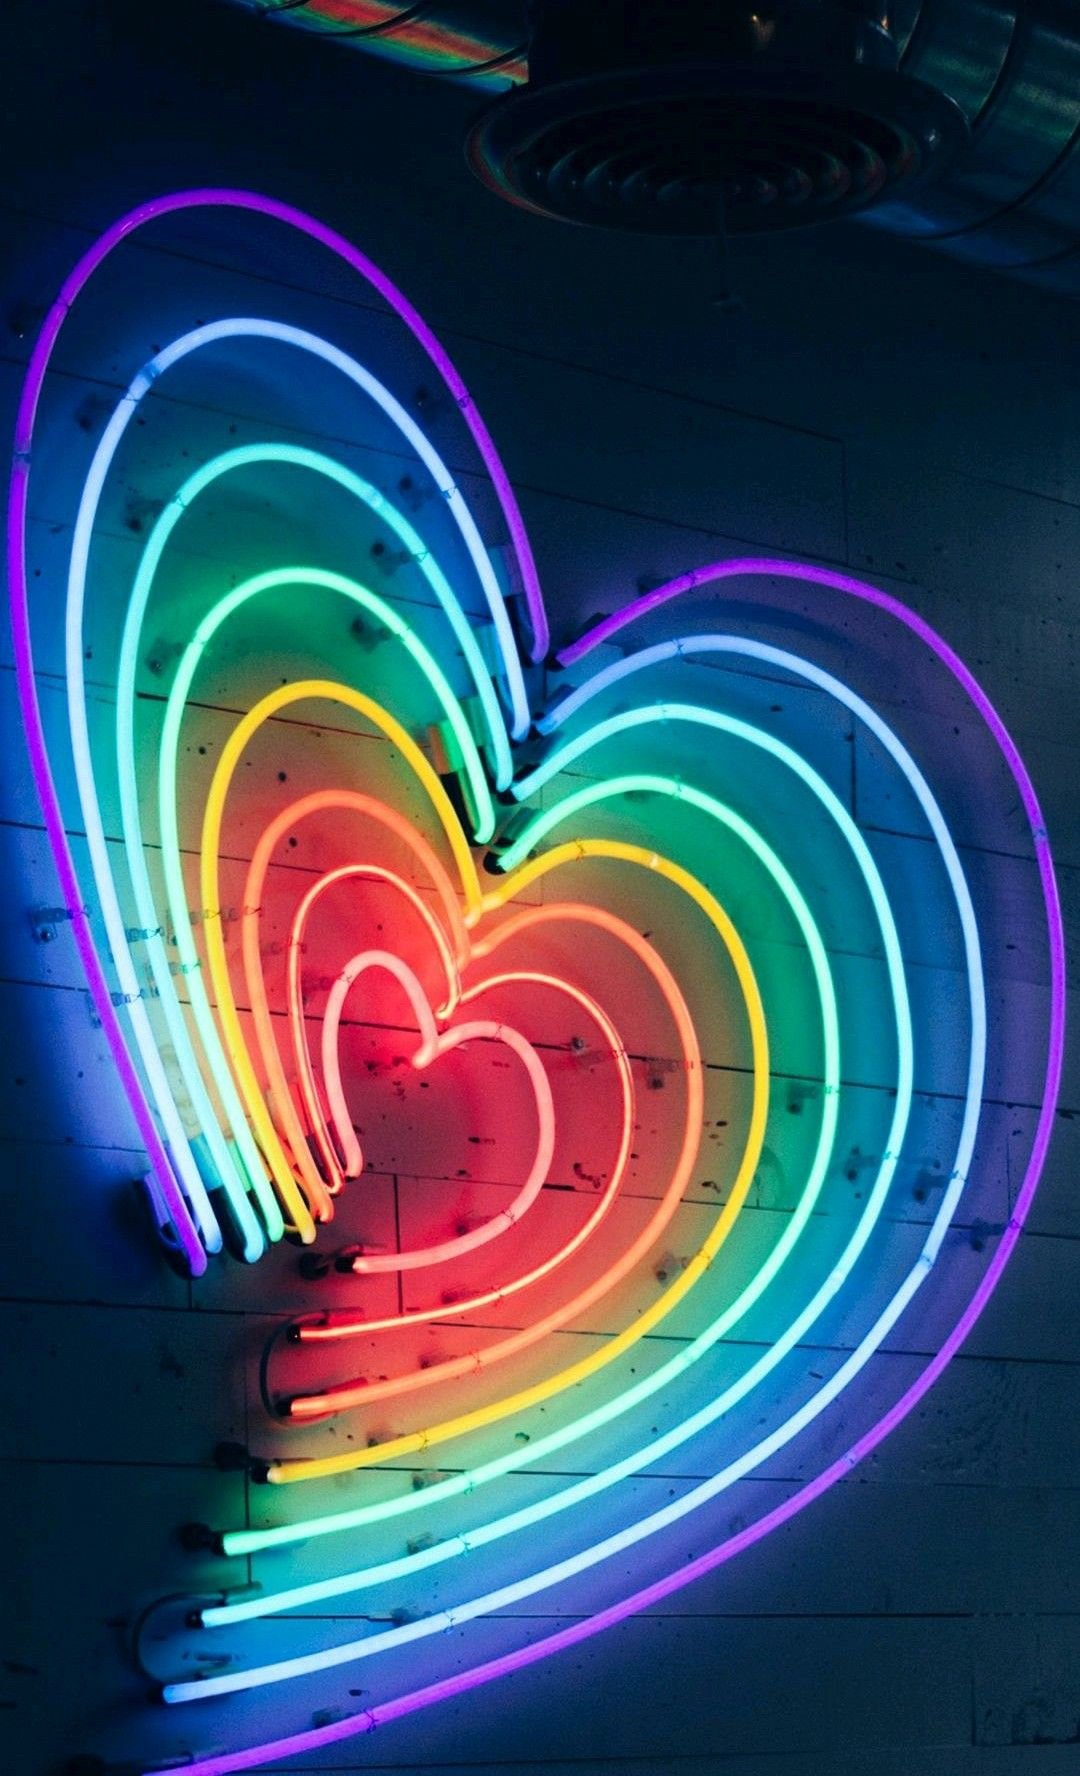 Neon Heart Rainbow Wallpaper Iphone Neon Neon Light Wallpaper